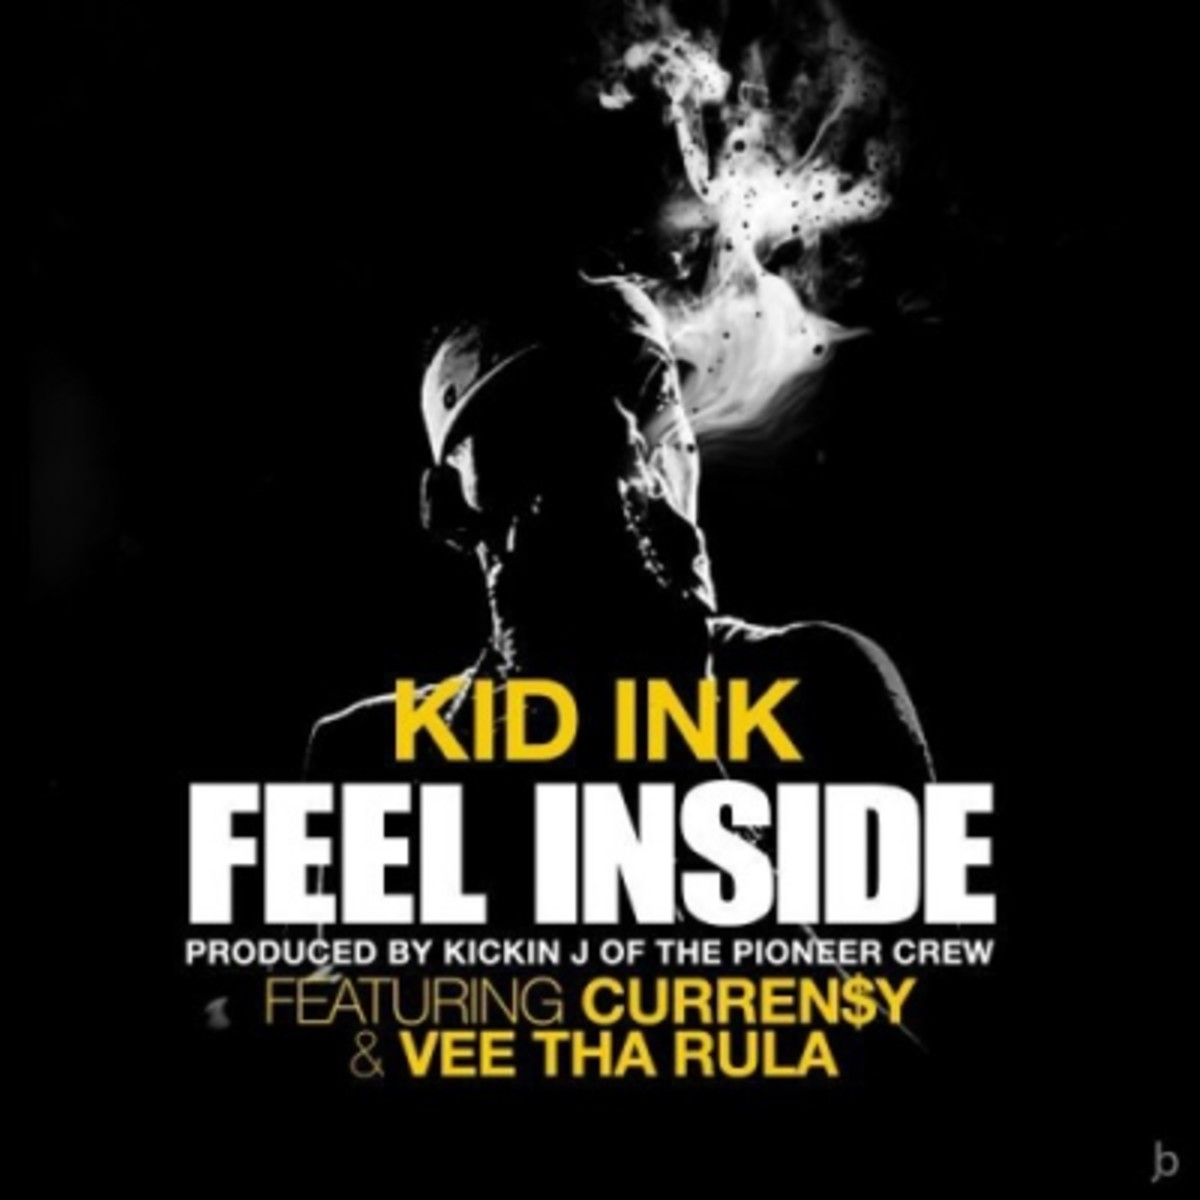 kid-ink-feel-inside.jpg